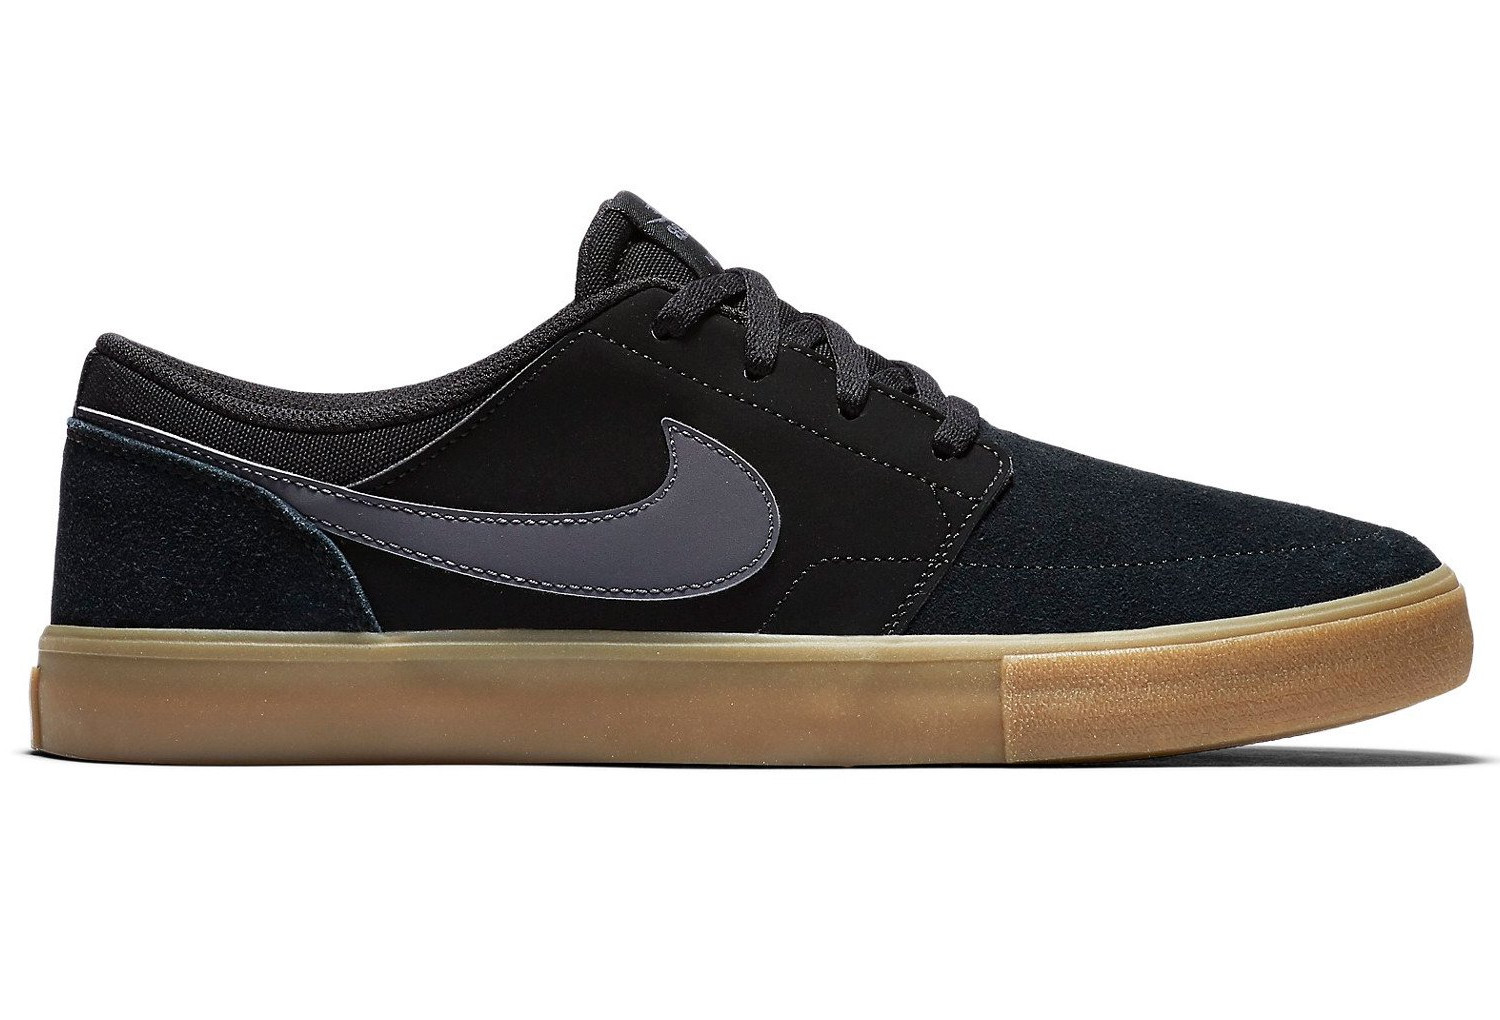 da8d21f01012 Nike SB Solarsoft Portmore II Shoes Black Gum